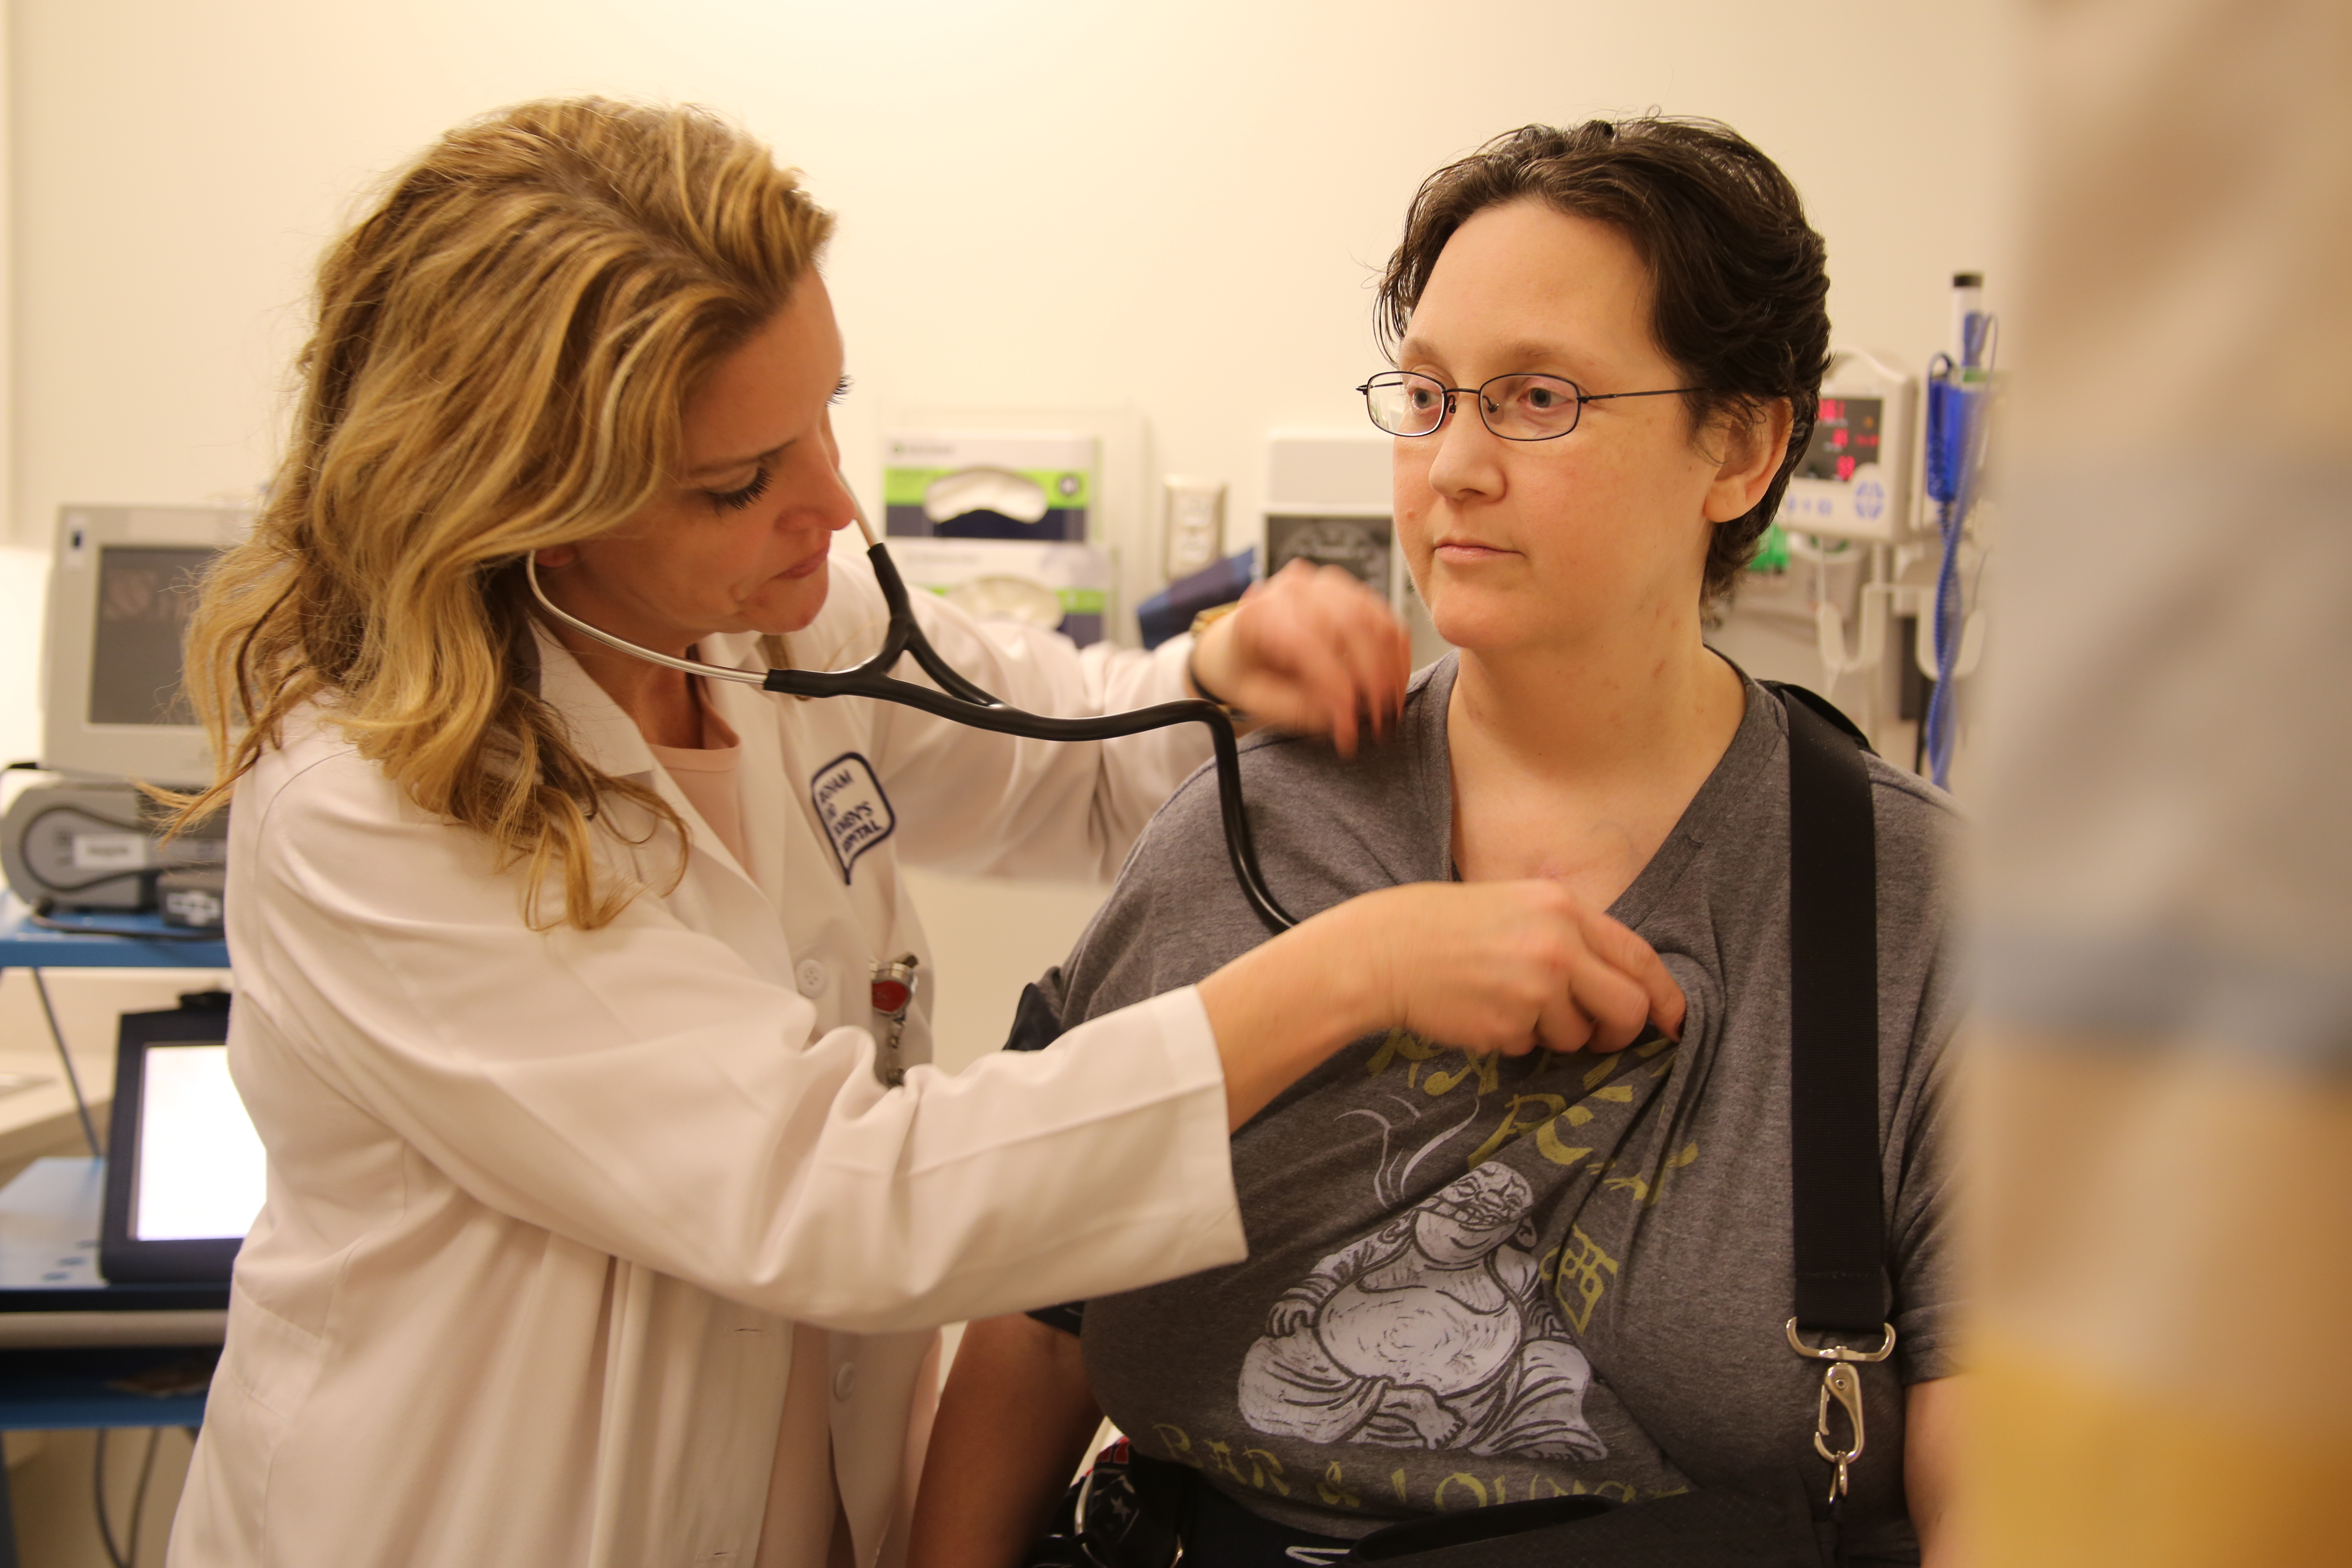 From left: Nurse practitioner Lara Coakley listens to patient Amy Prince's heart during a recent appointment.